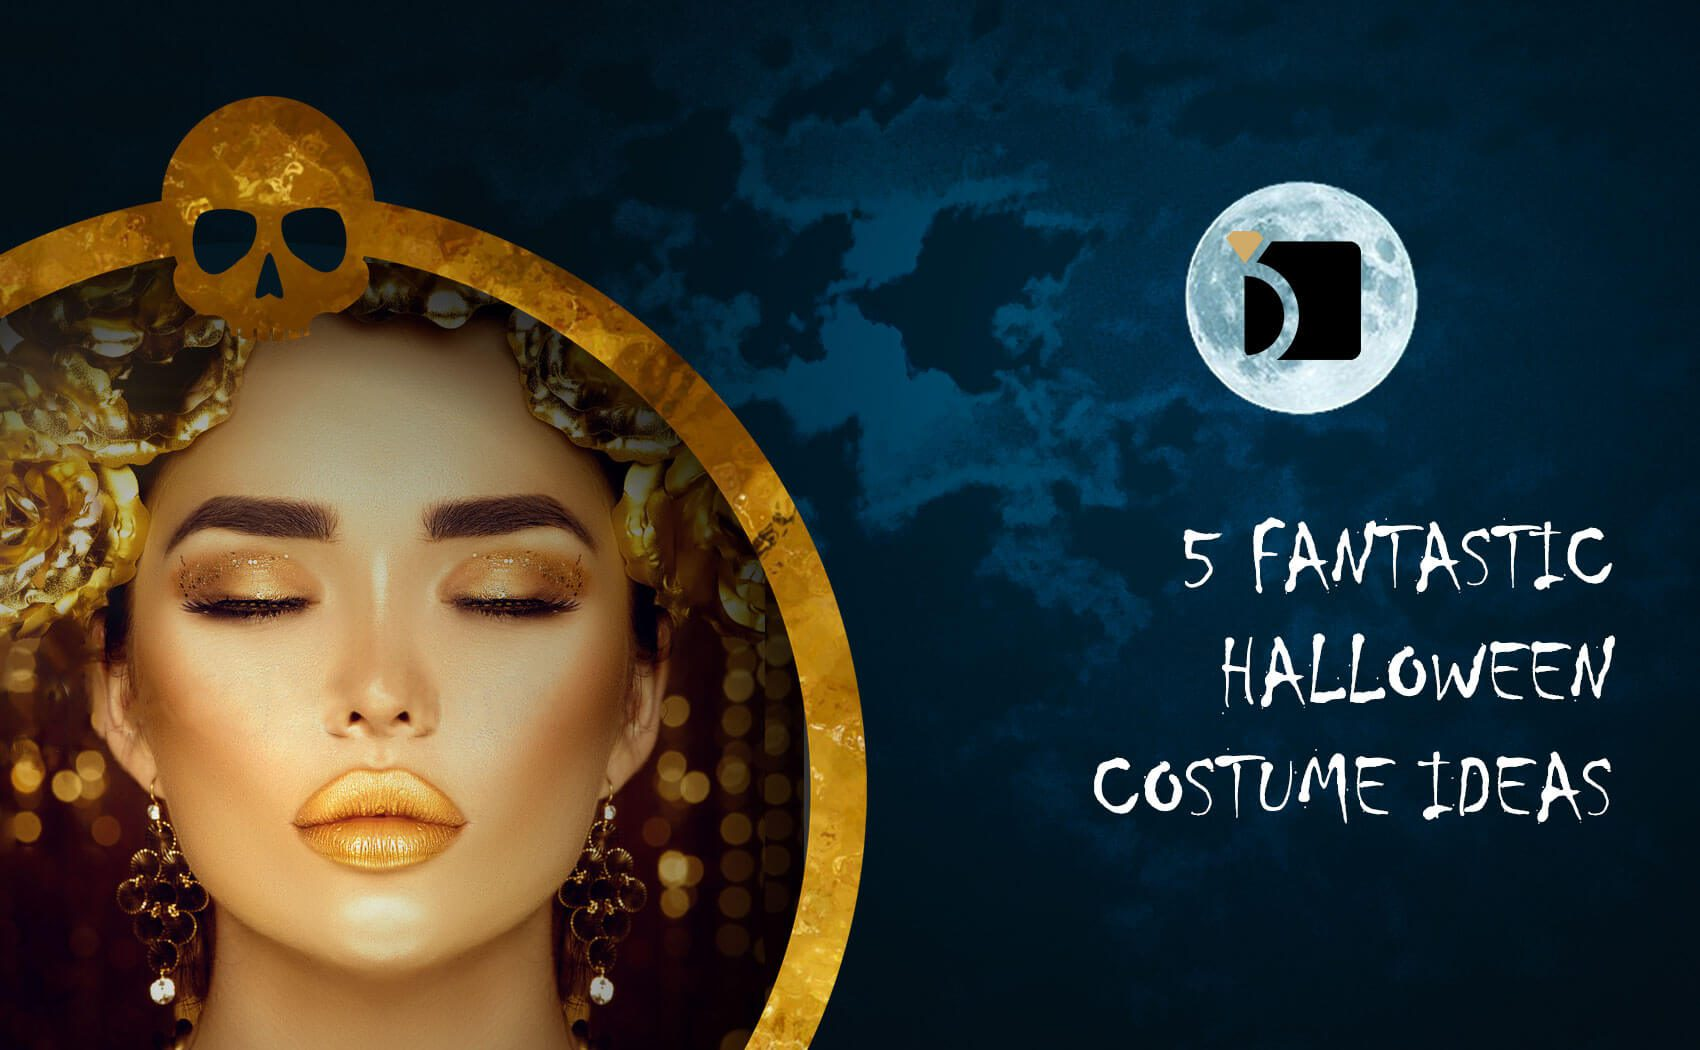 5 Fantastic Halloween Costume Ideas